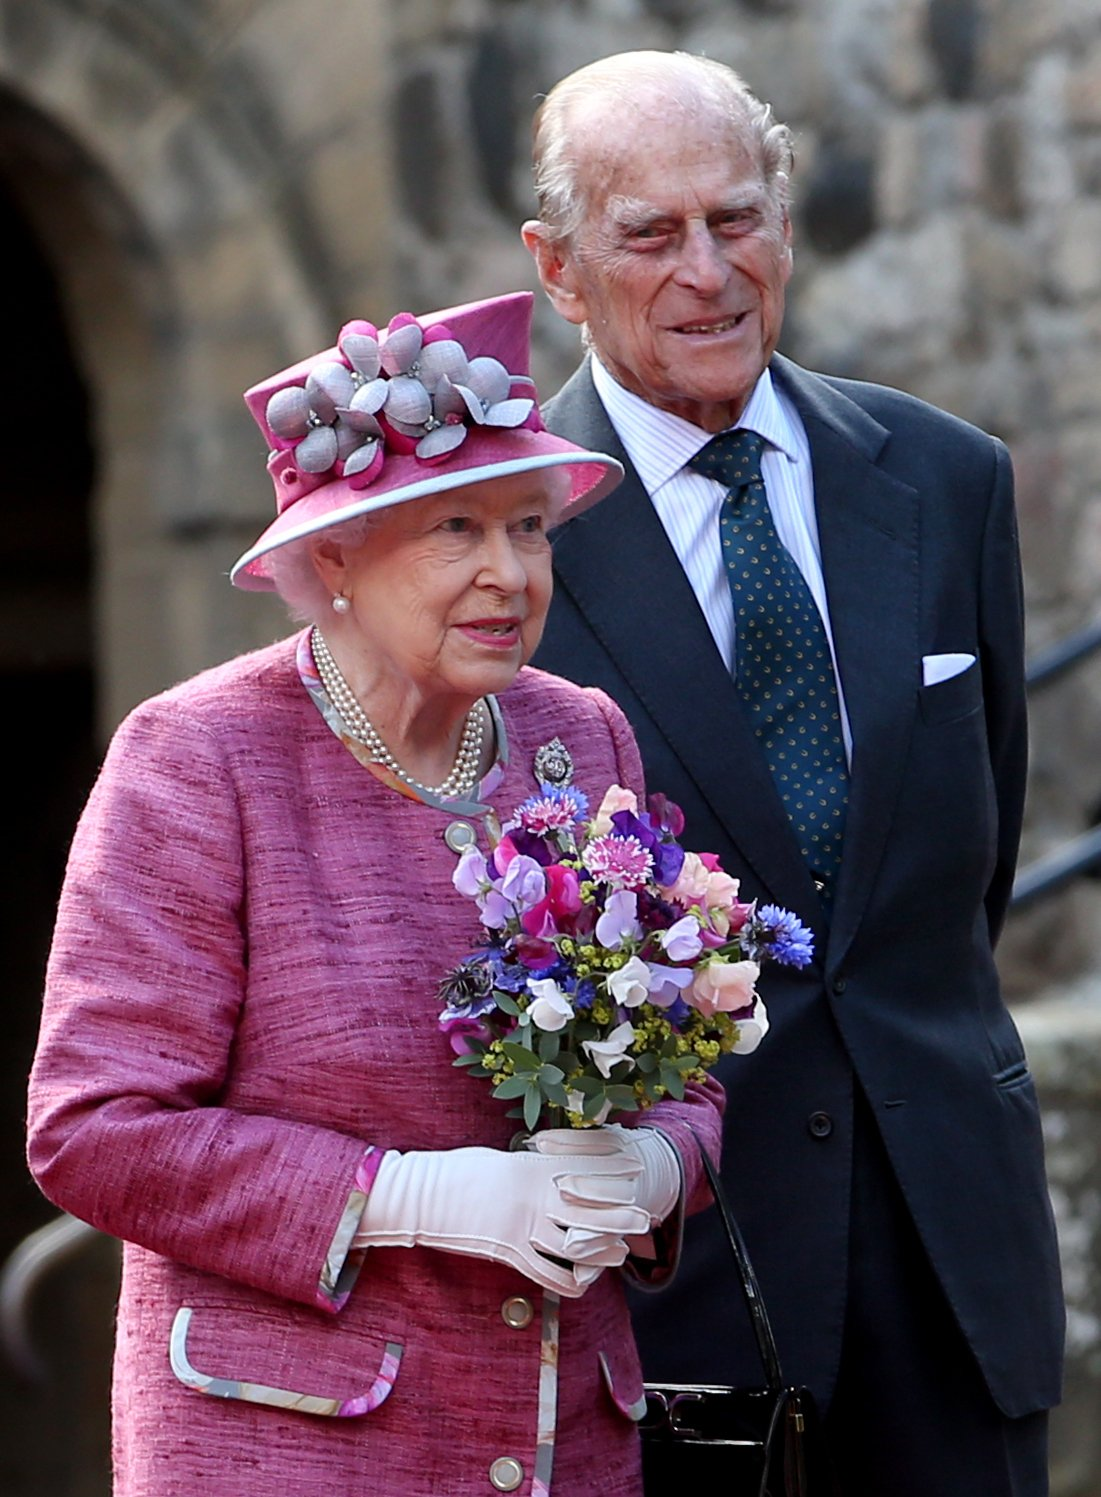 Queen Elizabeth II and the Duke of Edinburgh during a visit to Stirling Castle | Photo: Getty Images